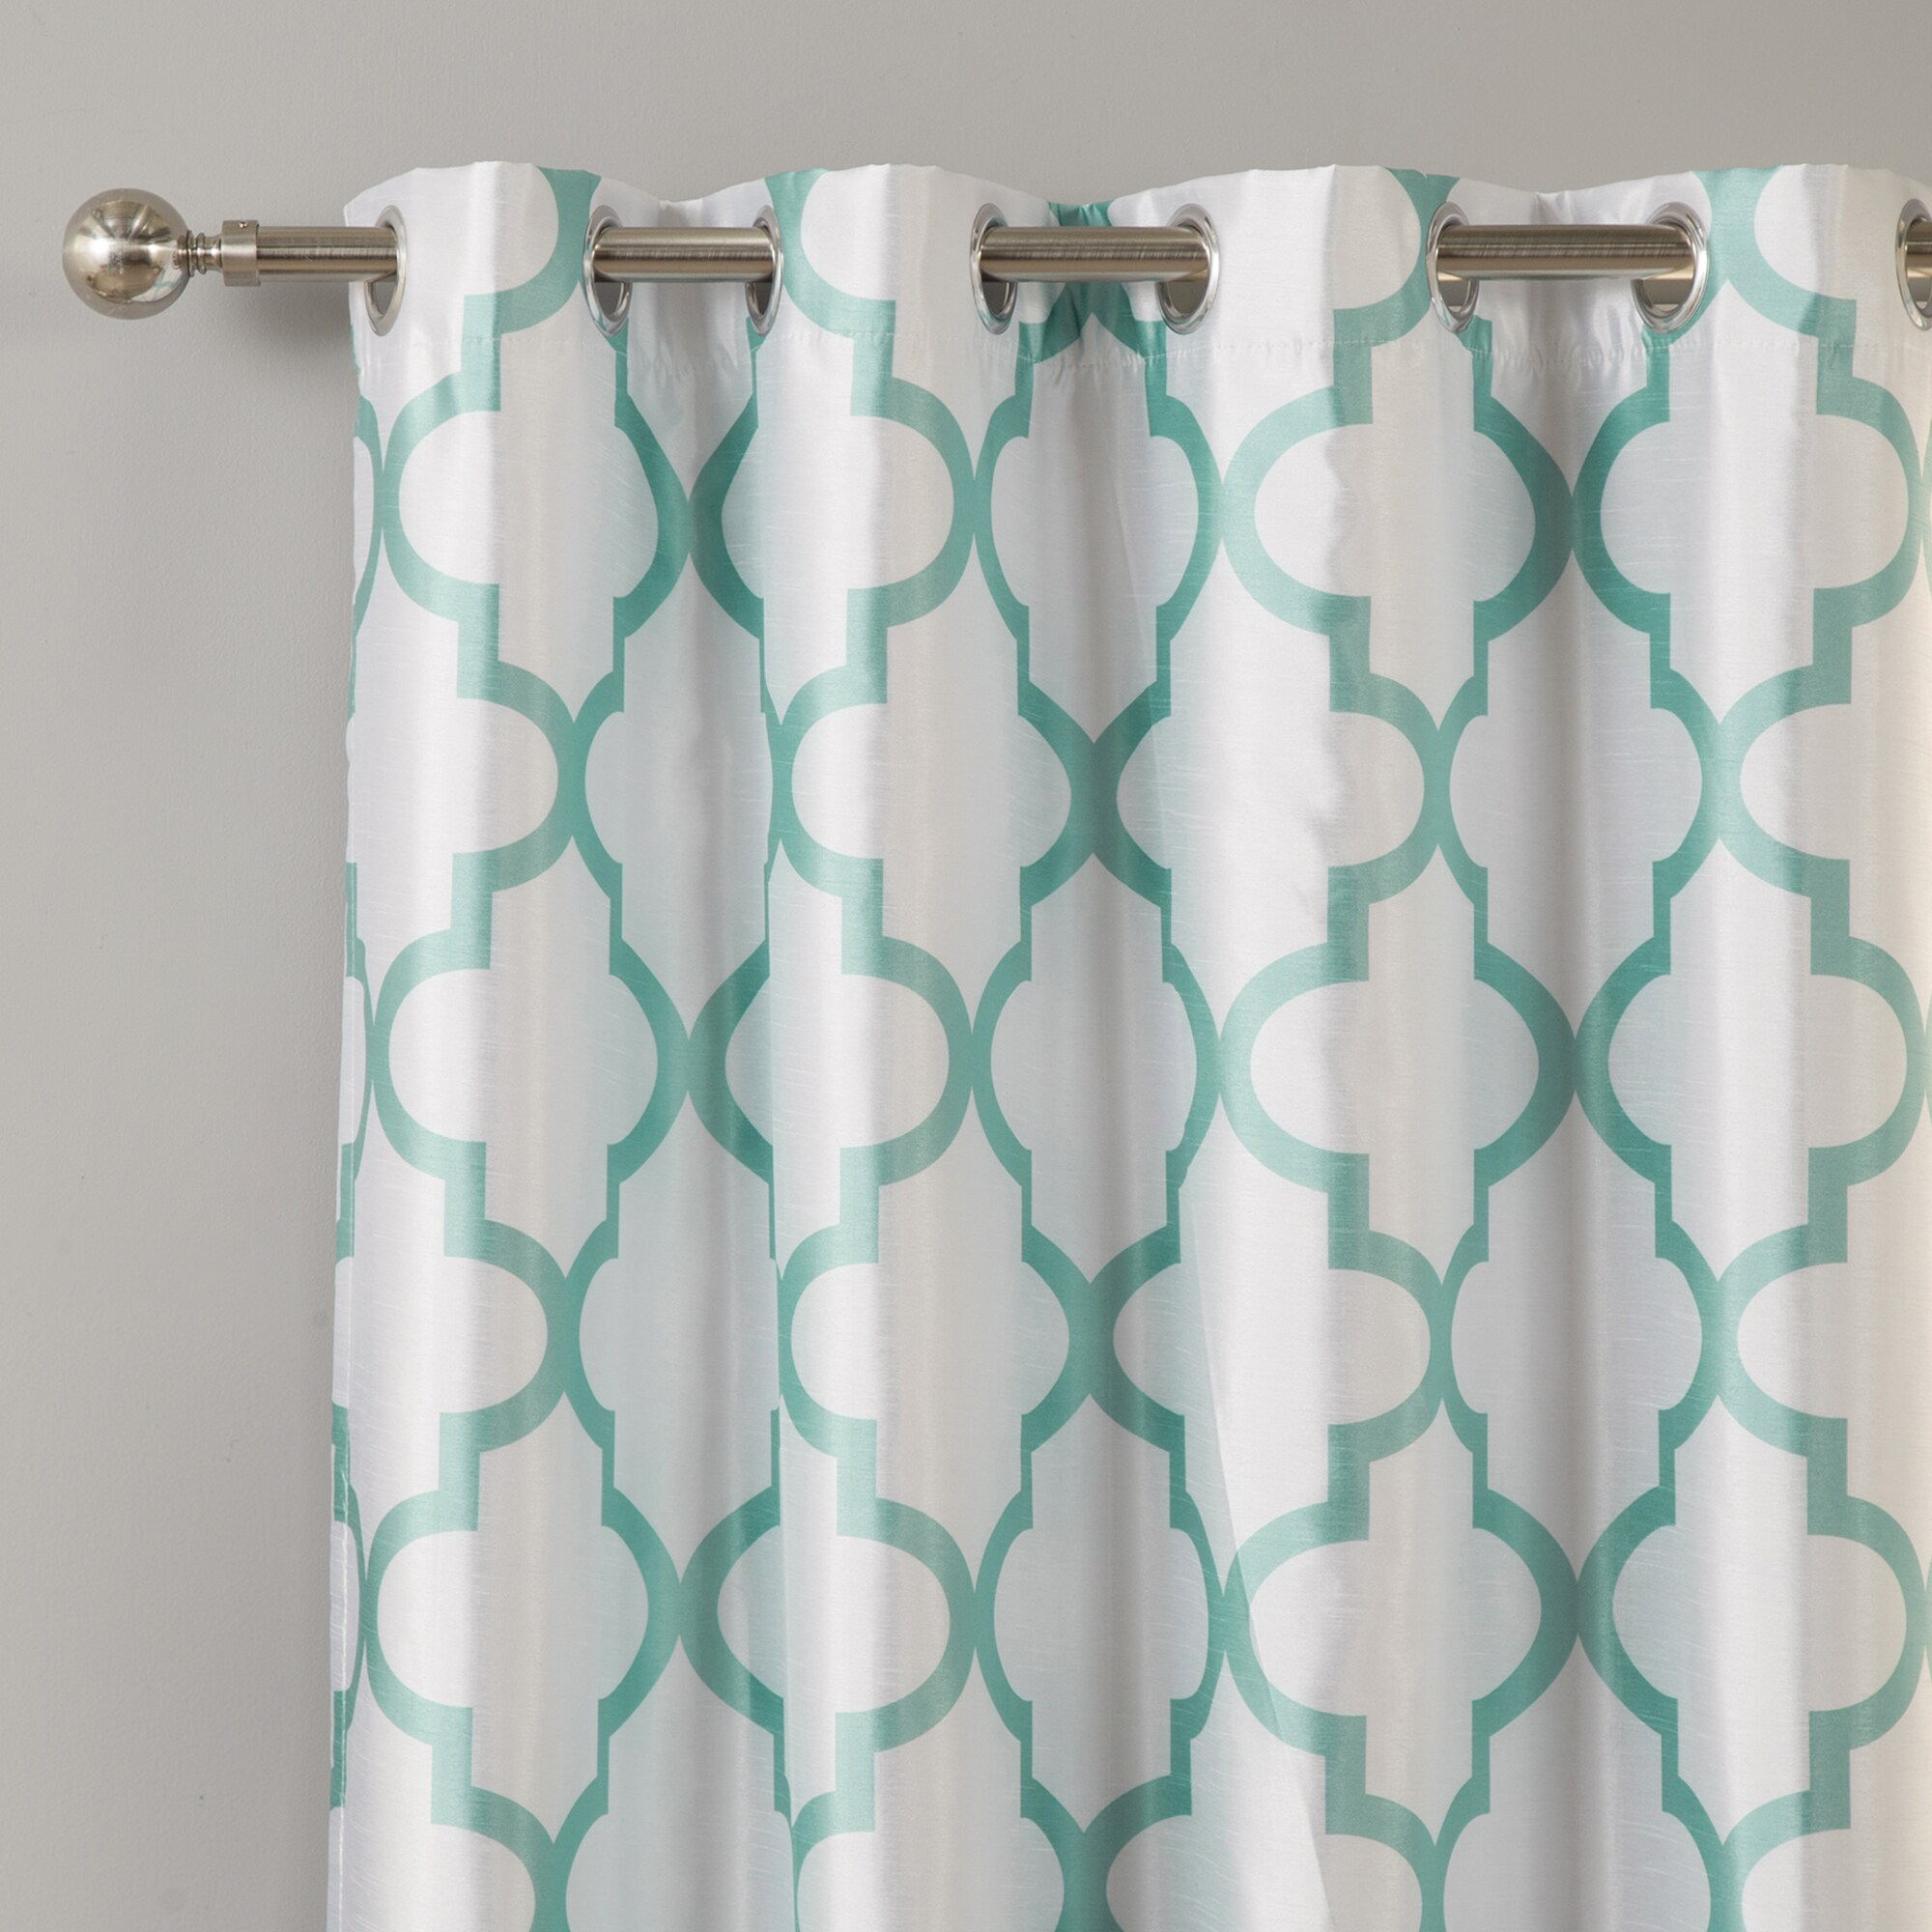 moroccan with of blackout window amazoncom curtain s curtains gray panels decor gallery free meridian quatrefoil geometric teal grommet